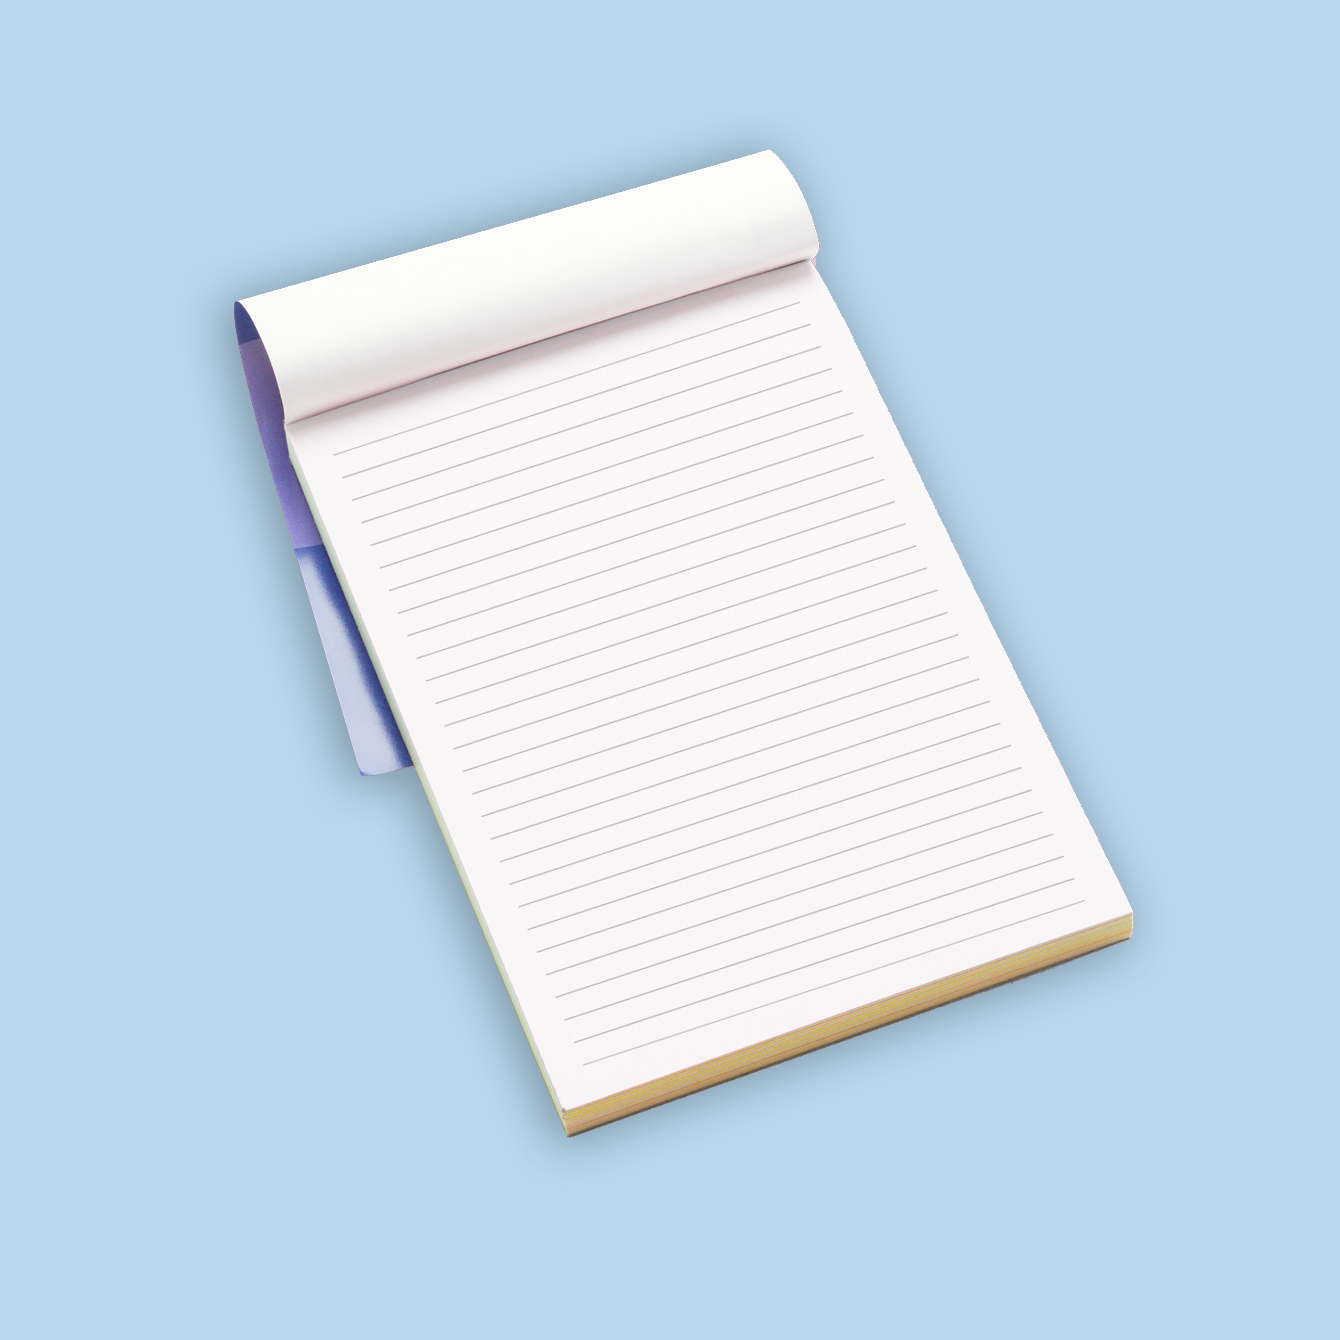 https://www.goldcoastprinting.com.au/images/products_gallery_images/Notepad_blue33.png